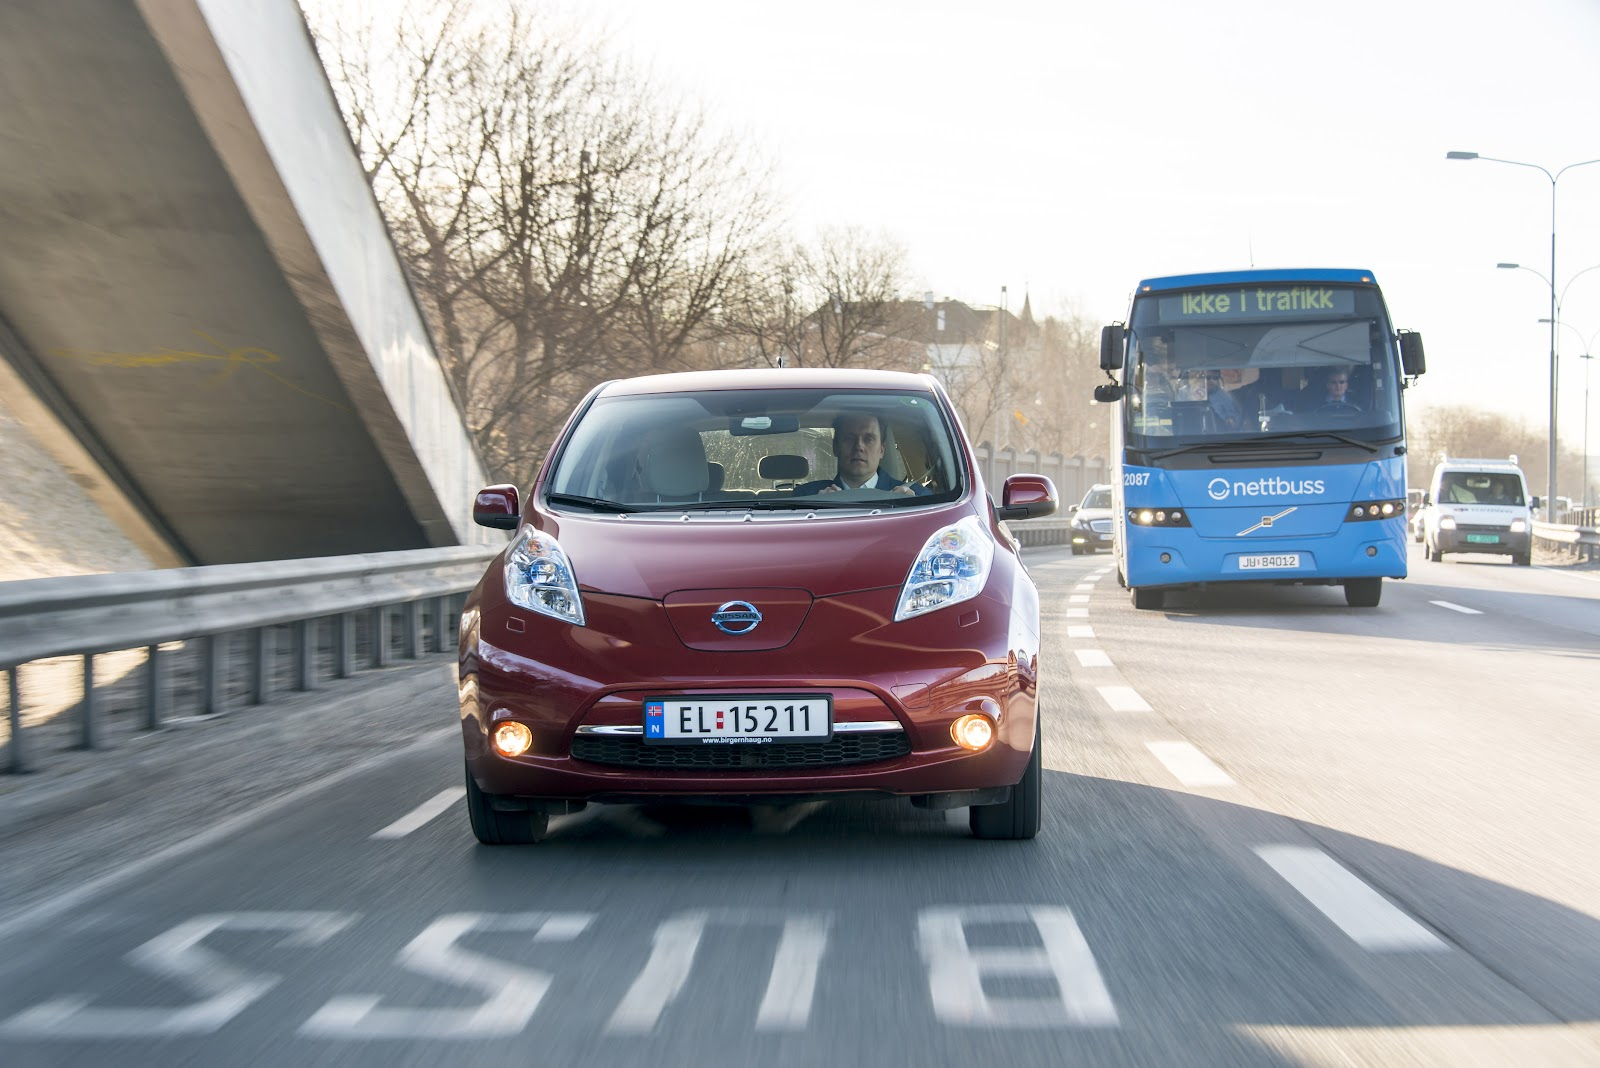 Nissan_Leaf_in_bus_lanes_Norway.jpg